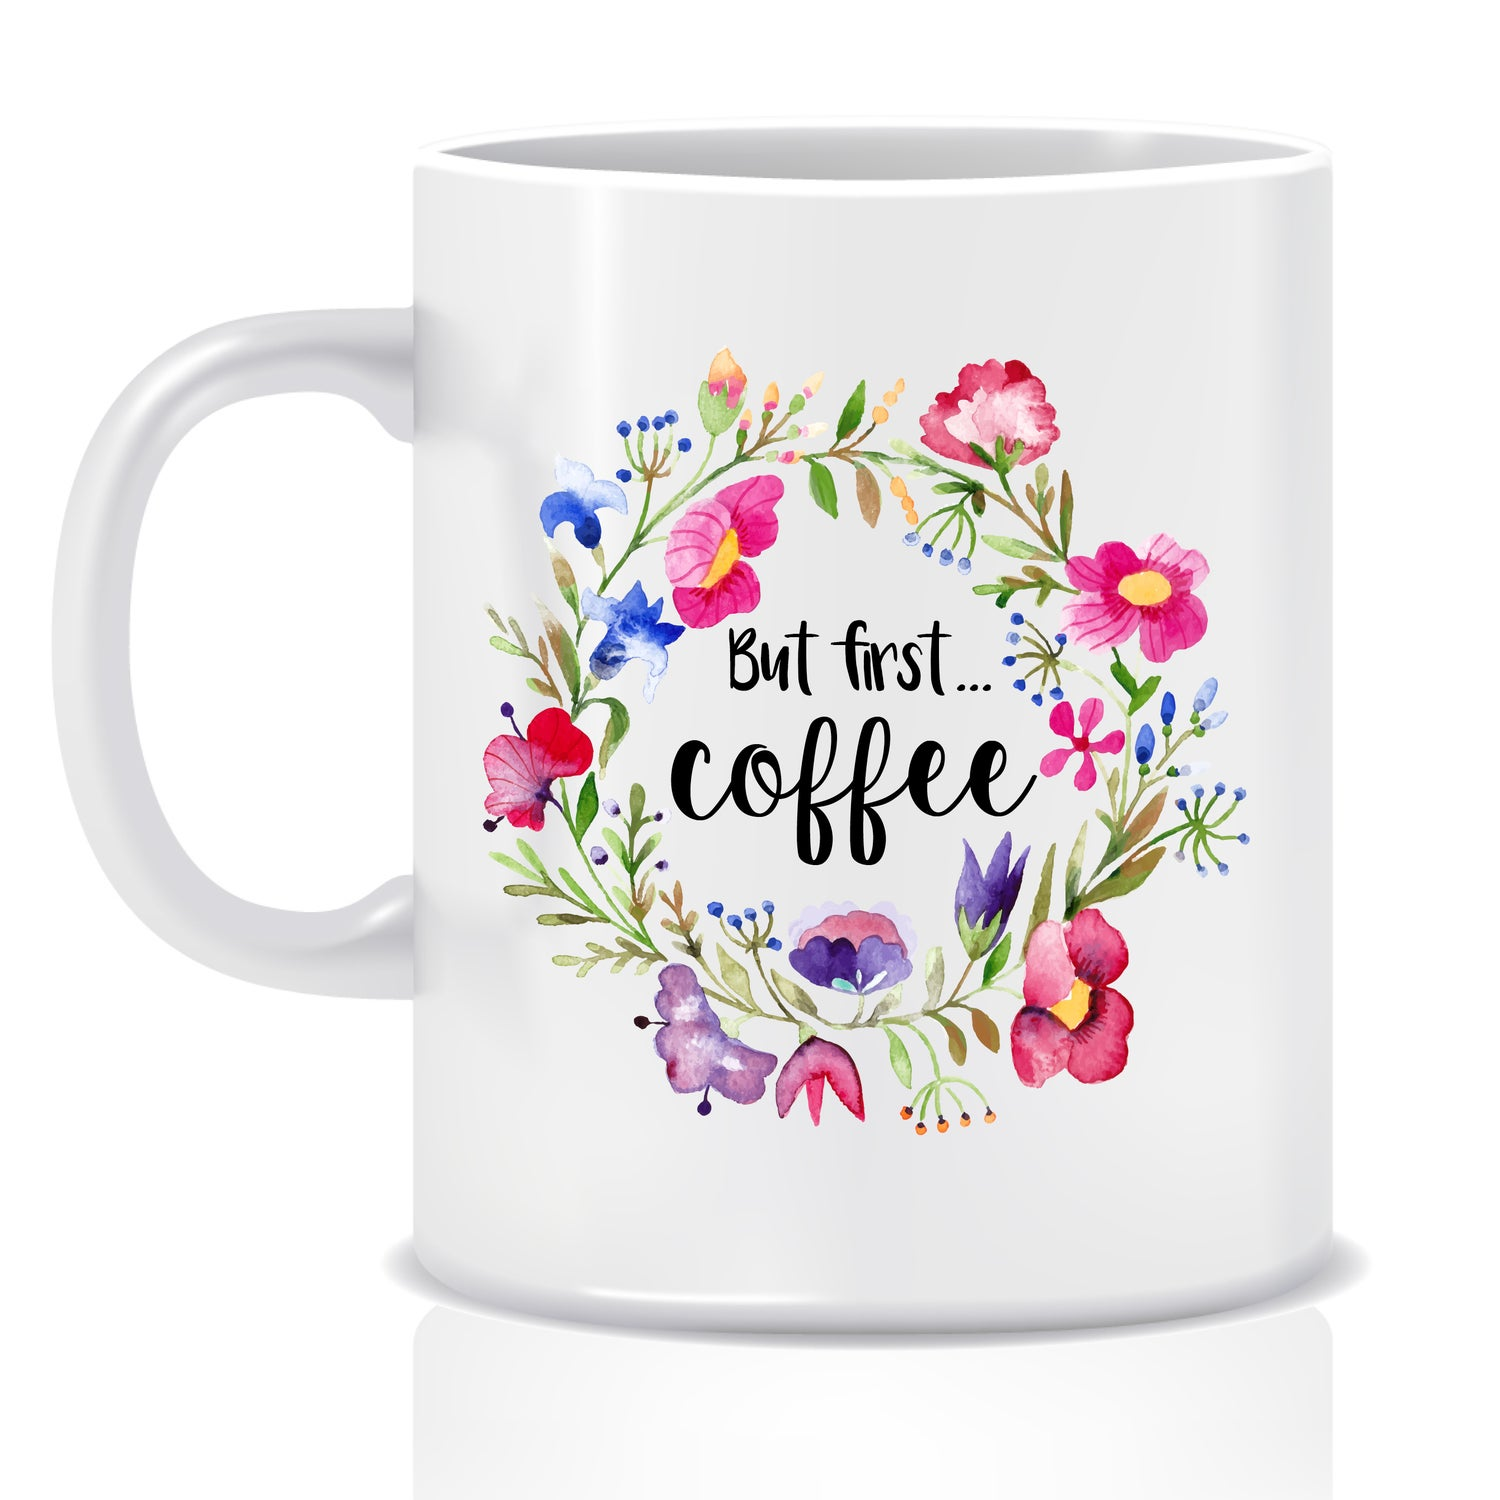 Image of But first, coffee floral mug